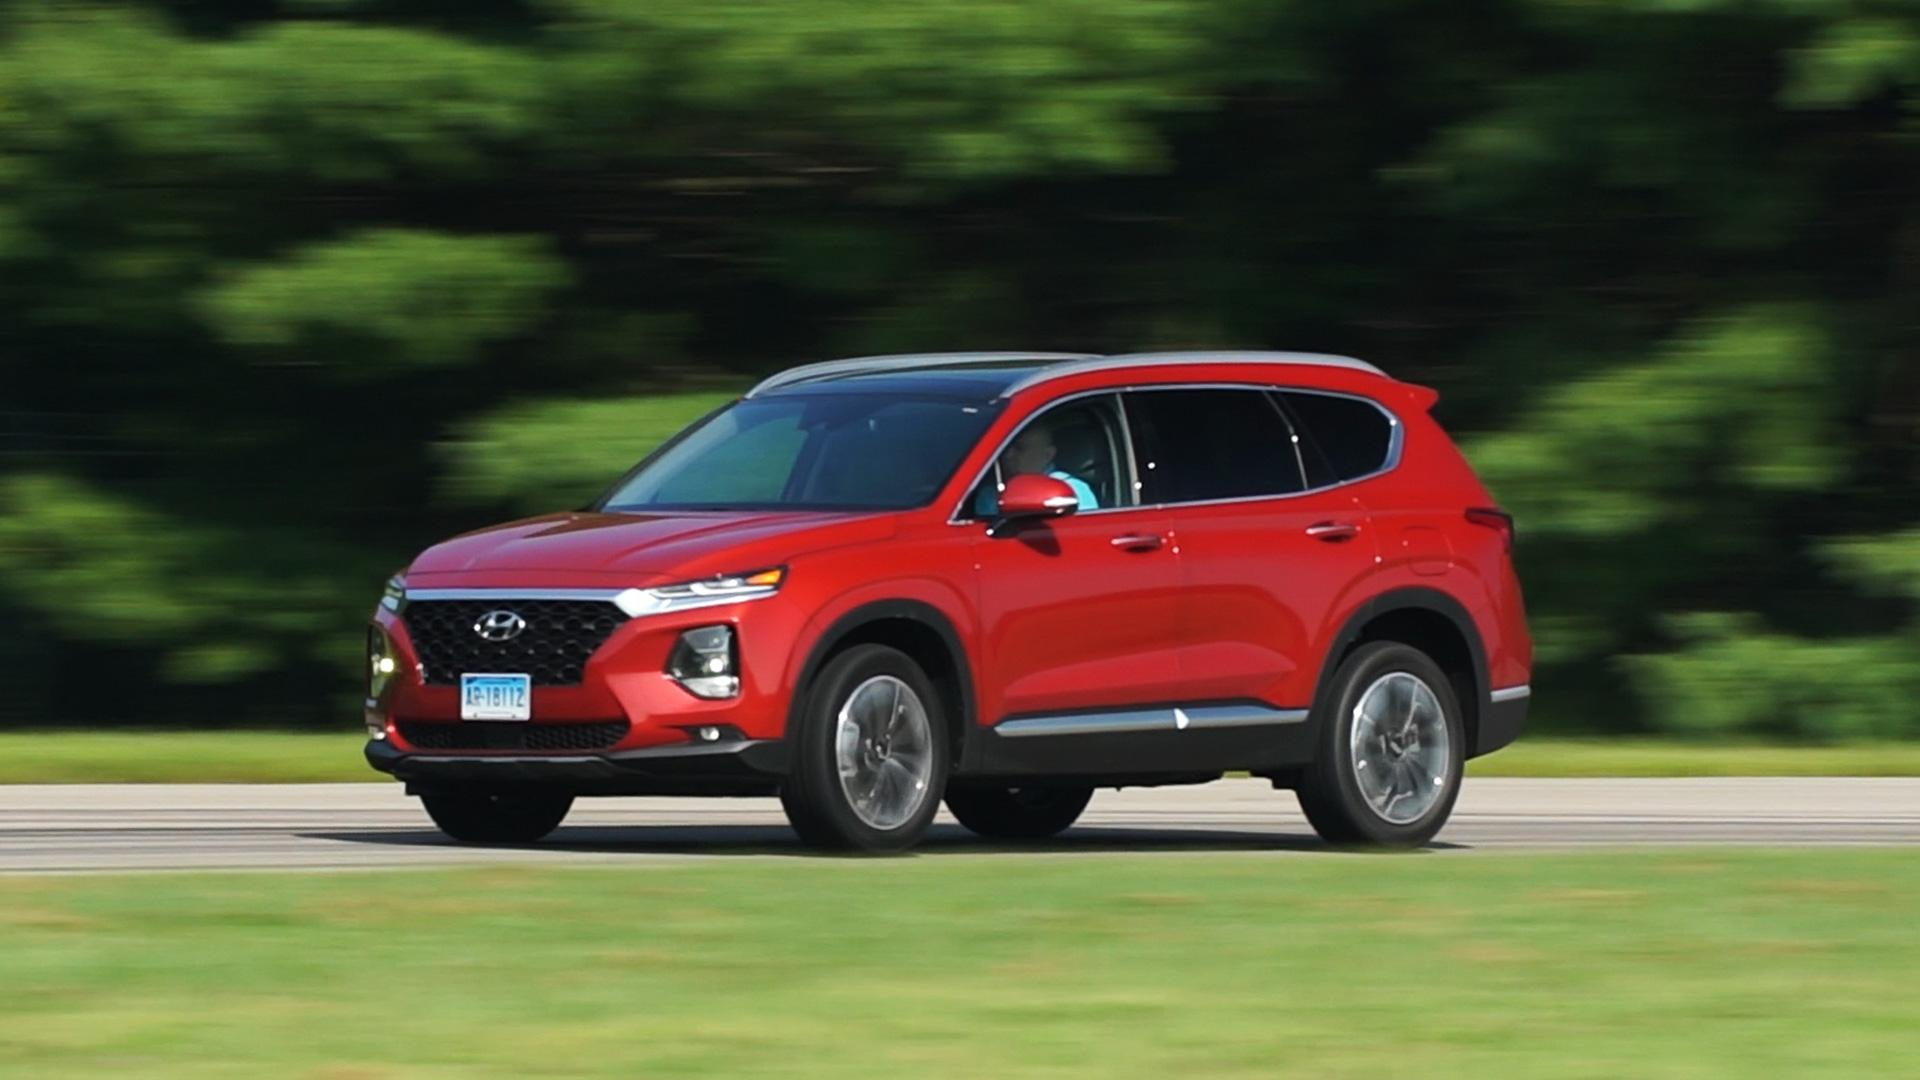 b57c5b584b 2019 Hyundai Santa Fe Review - Consumer Reports